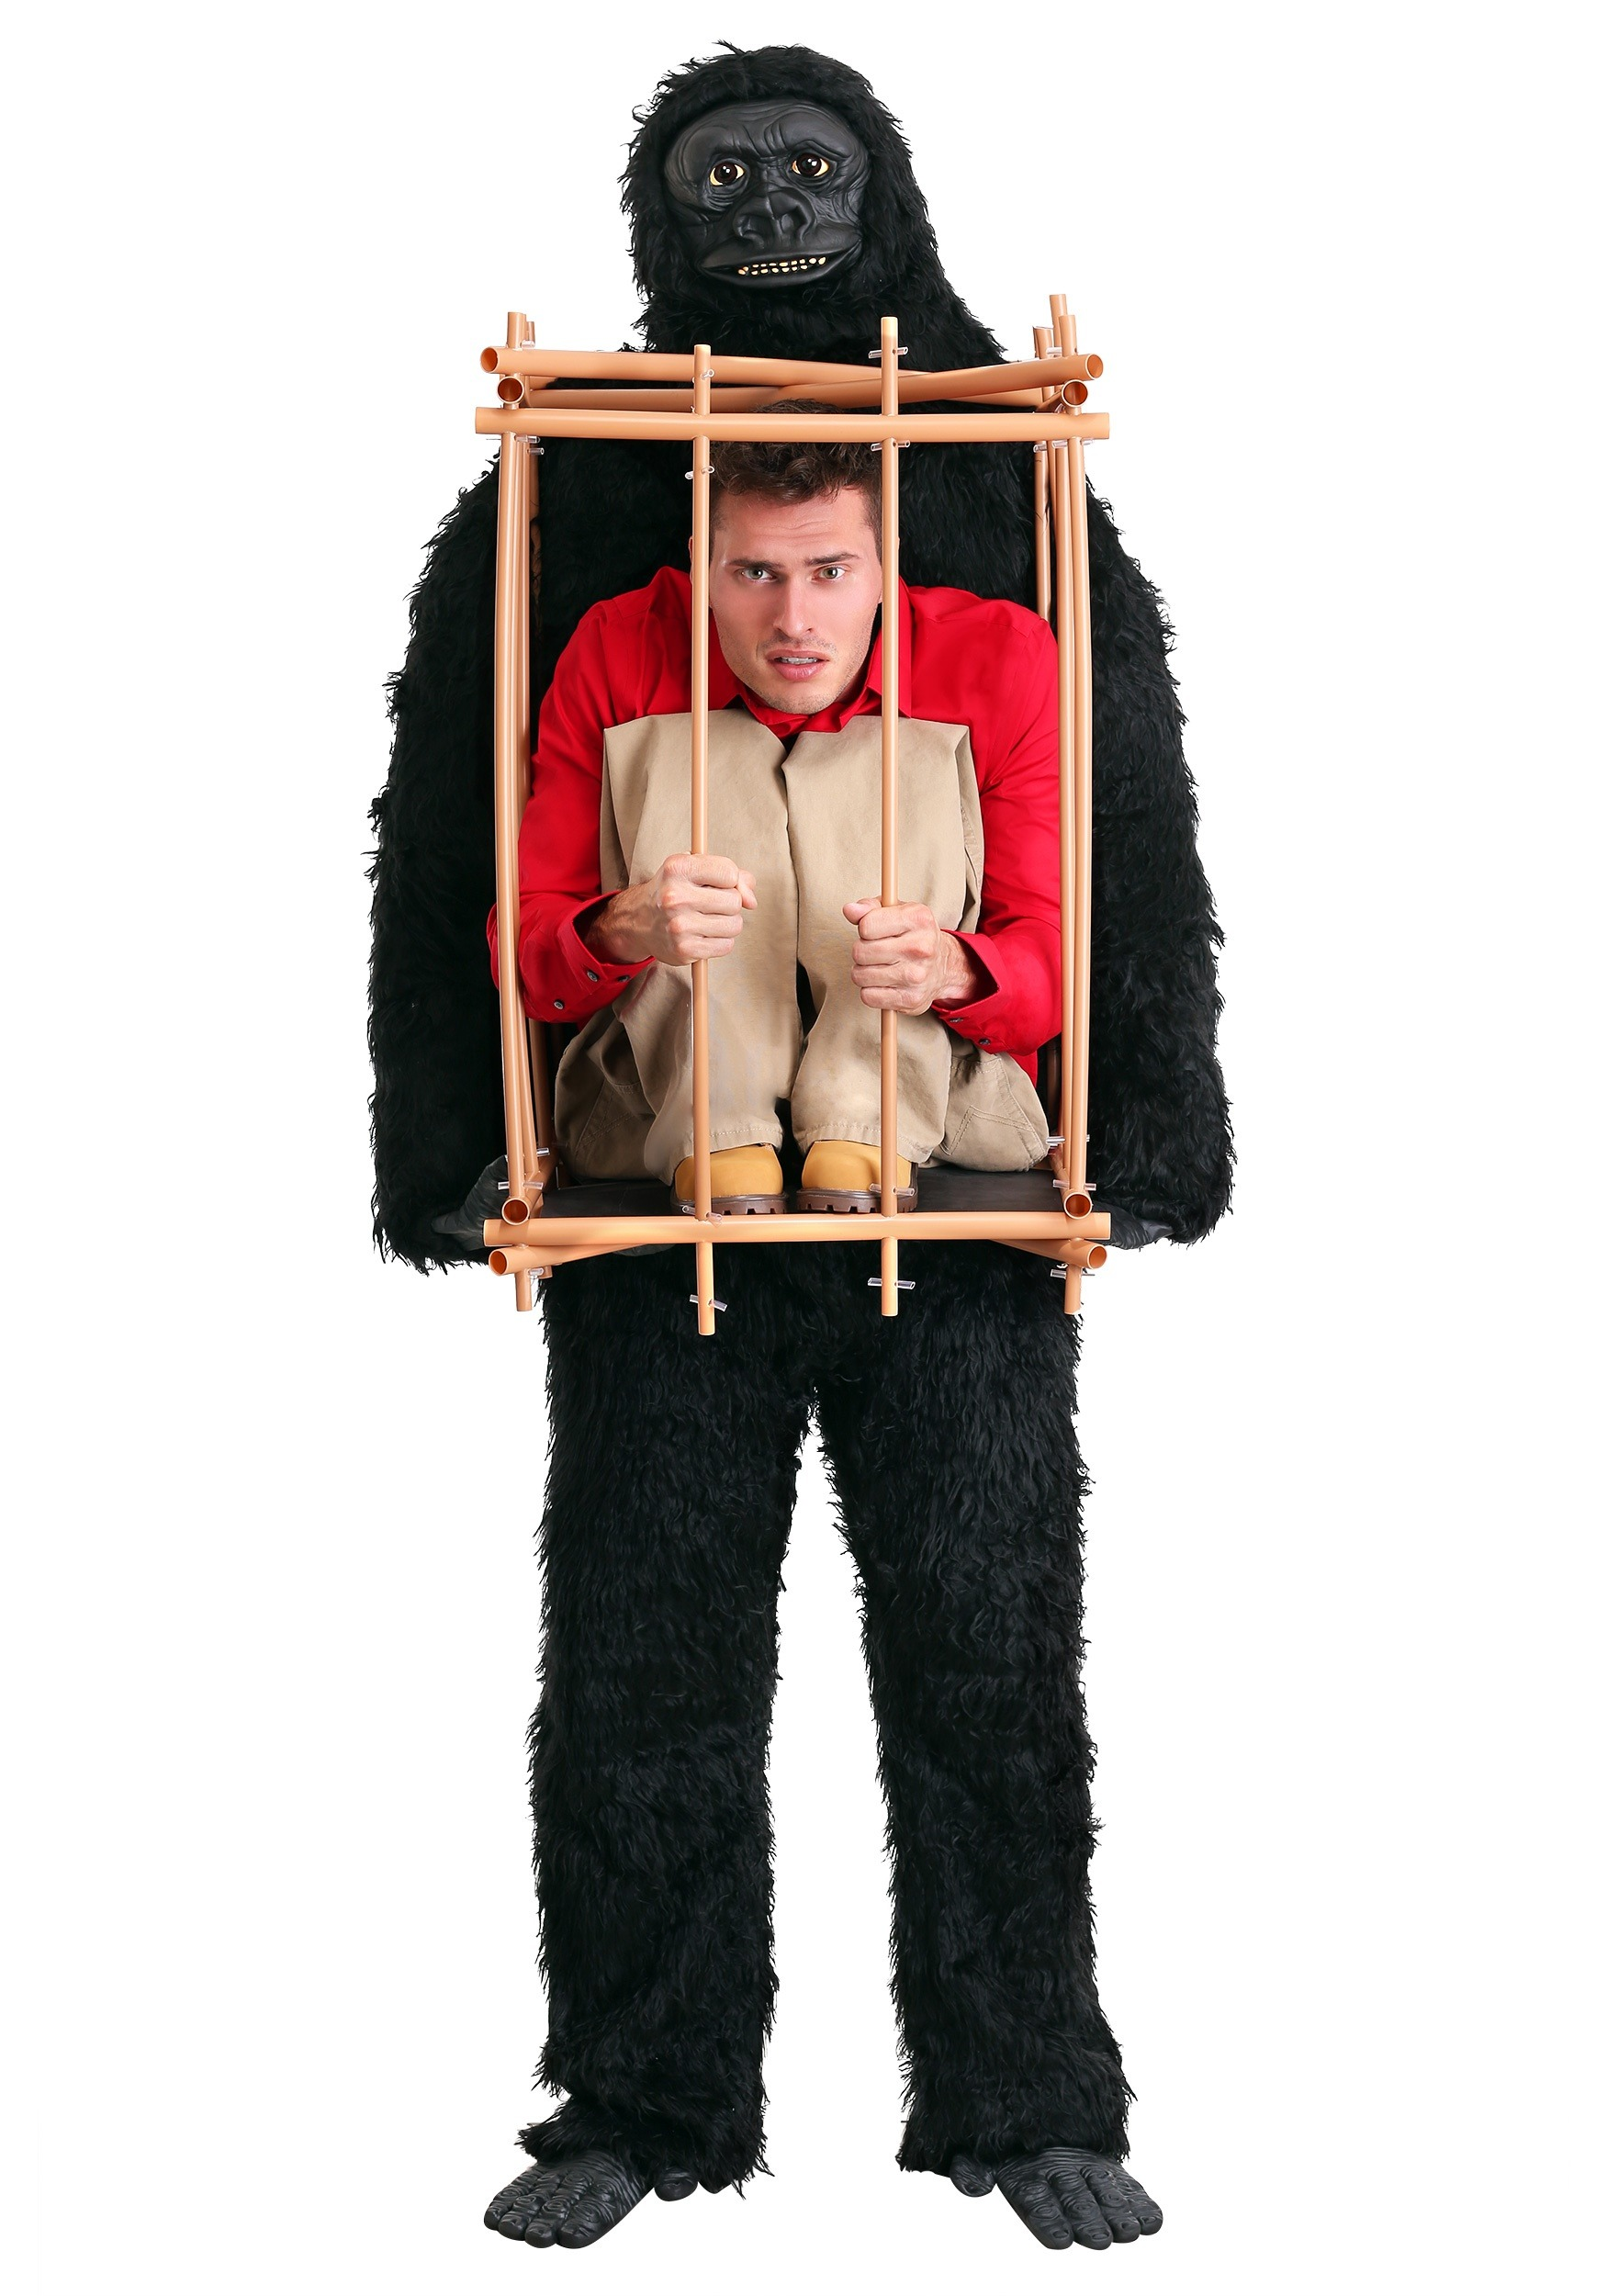 Uncategorized How To Make A Gorilla Costume man in a gorilla cage costume